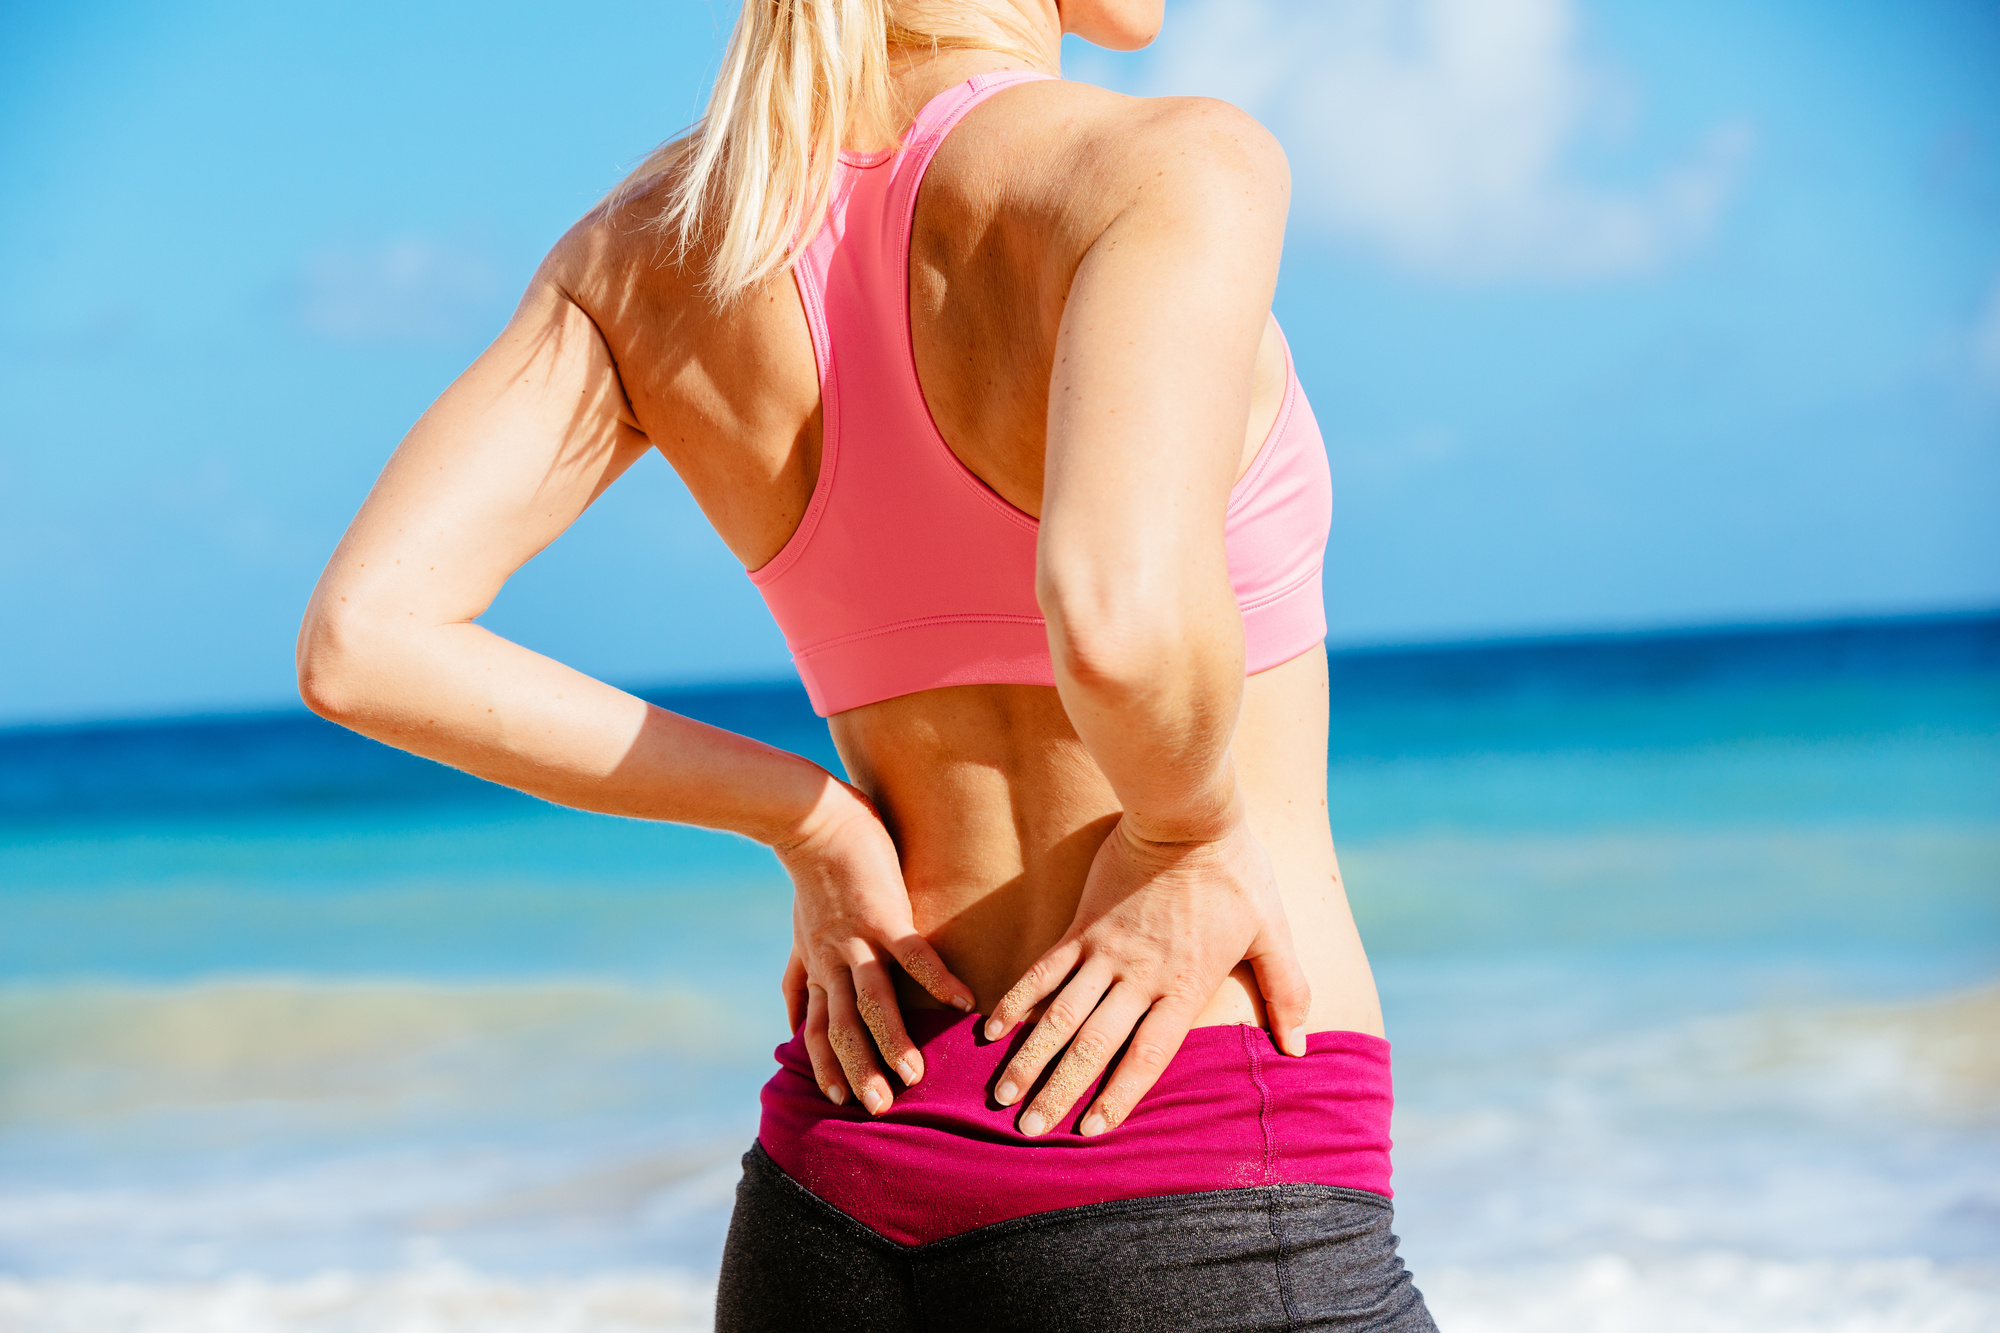 How to Relieve Lower Back Pain